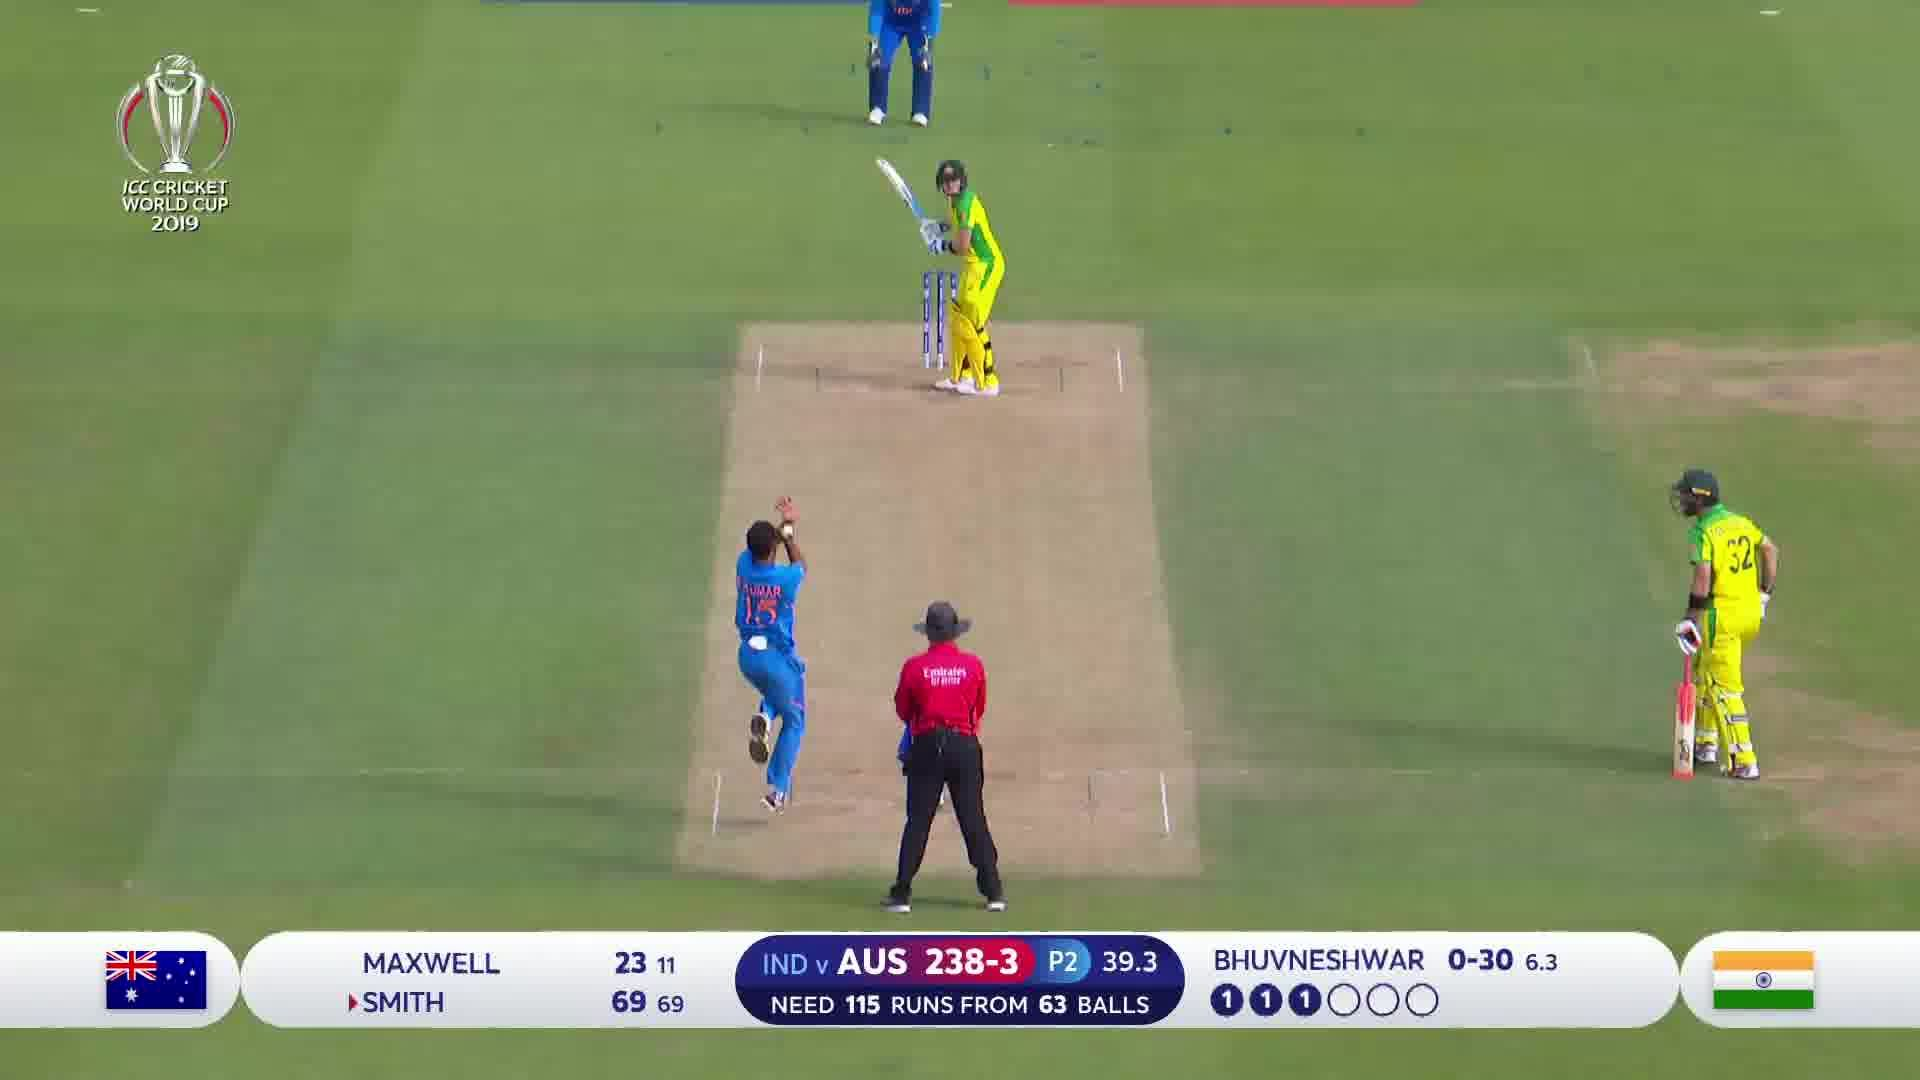 Pin on funny cricket gif